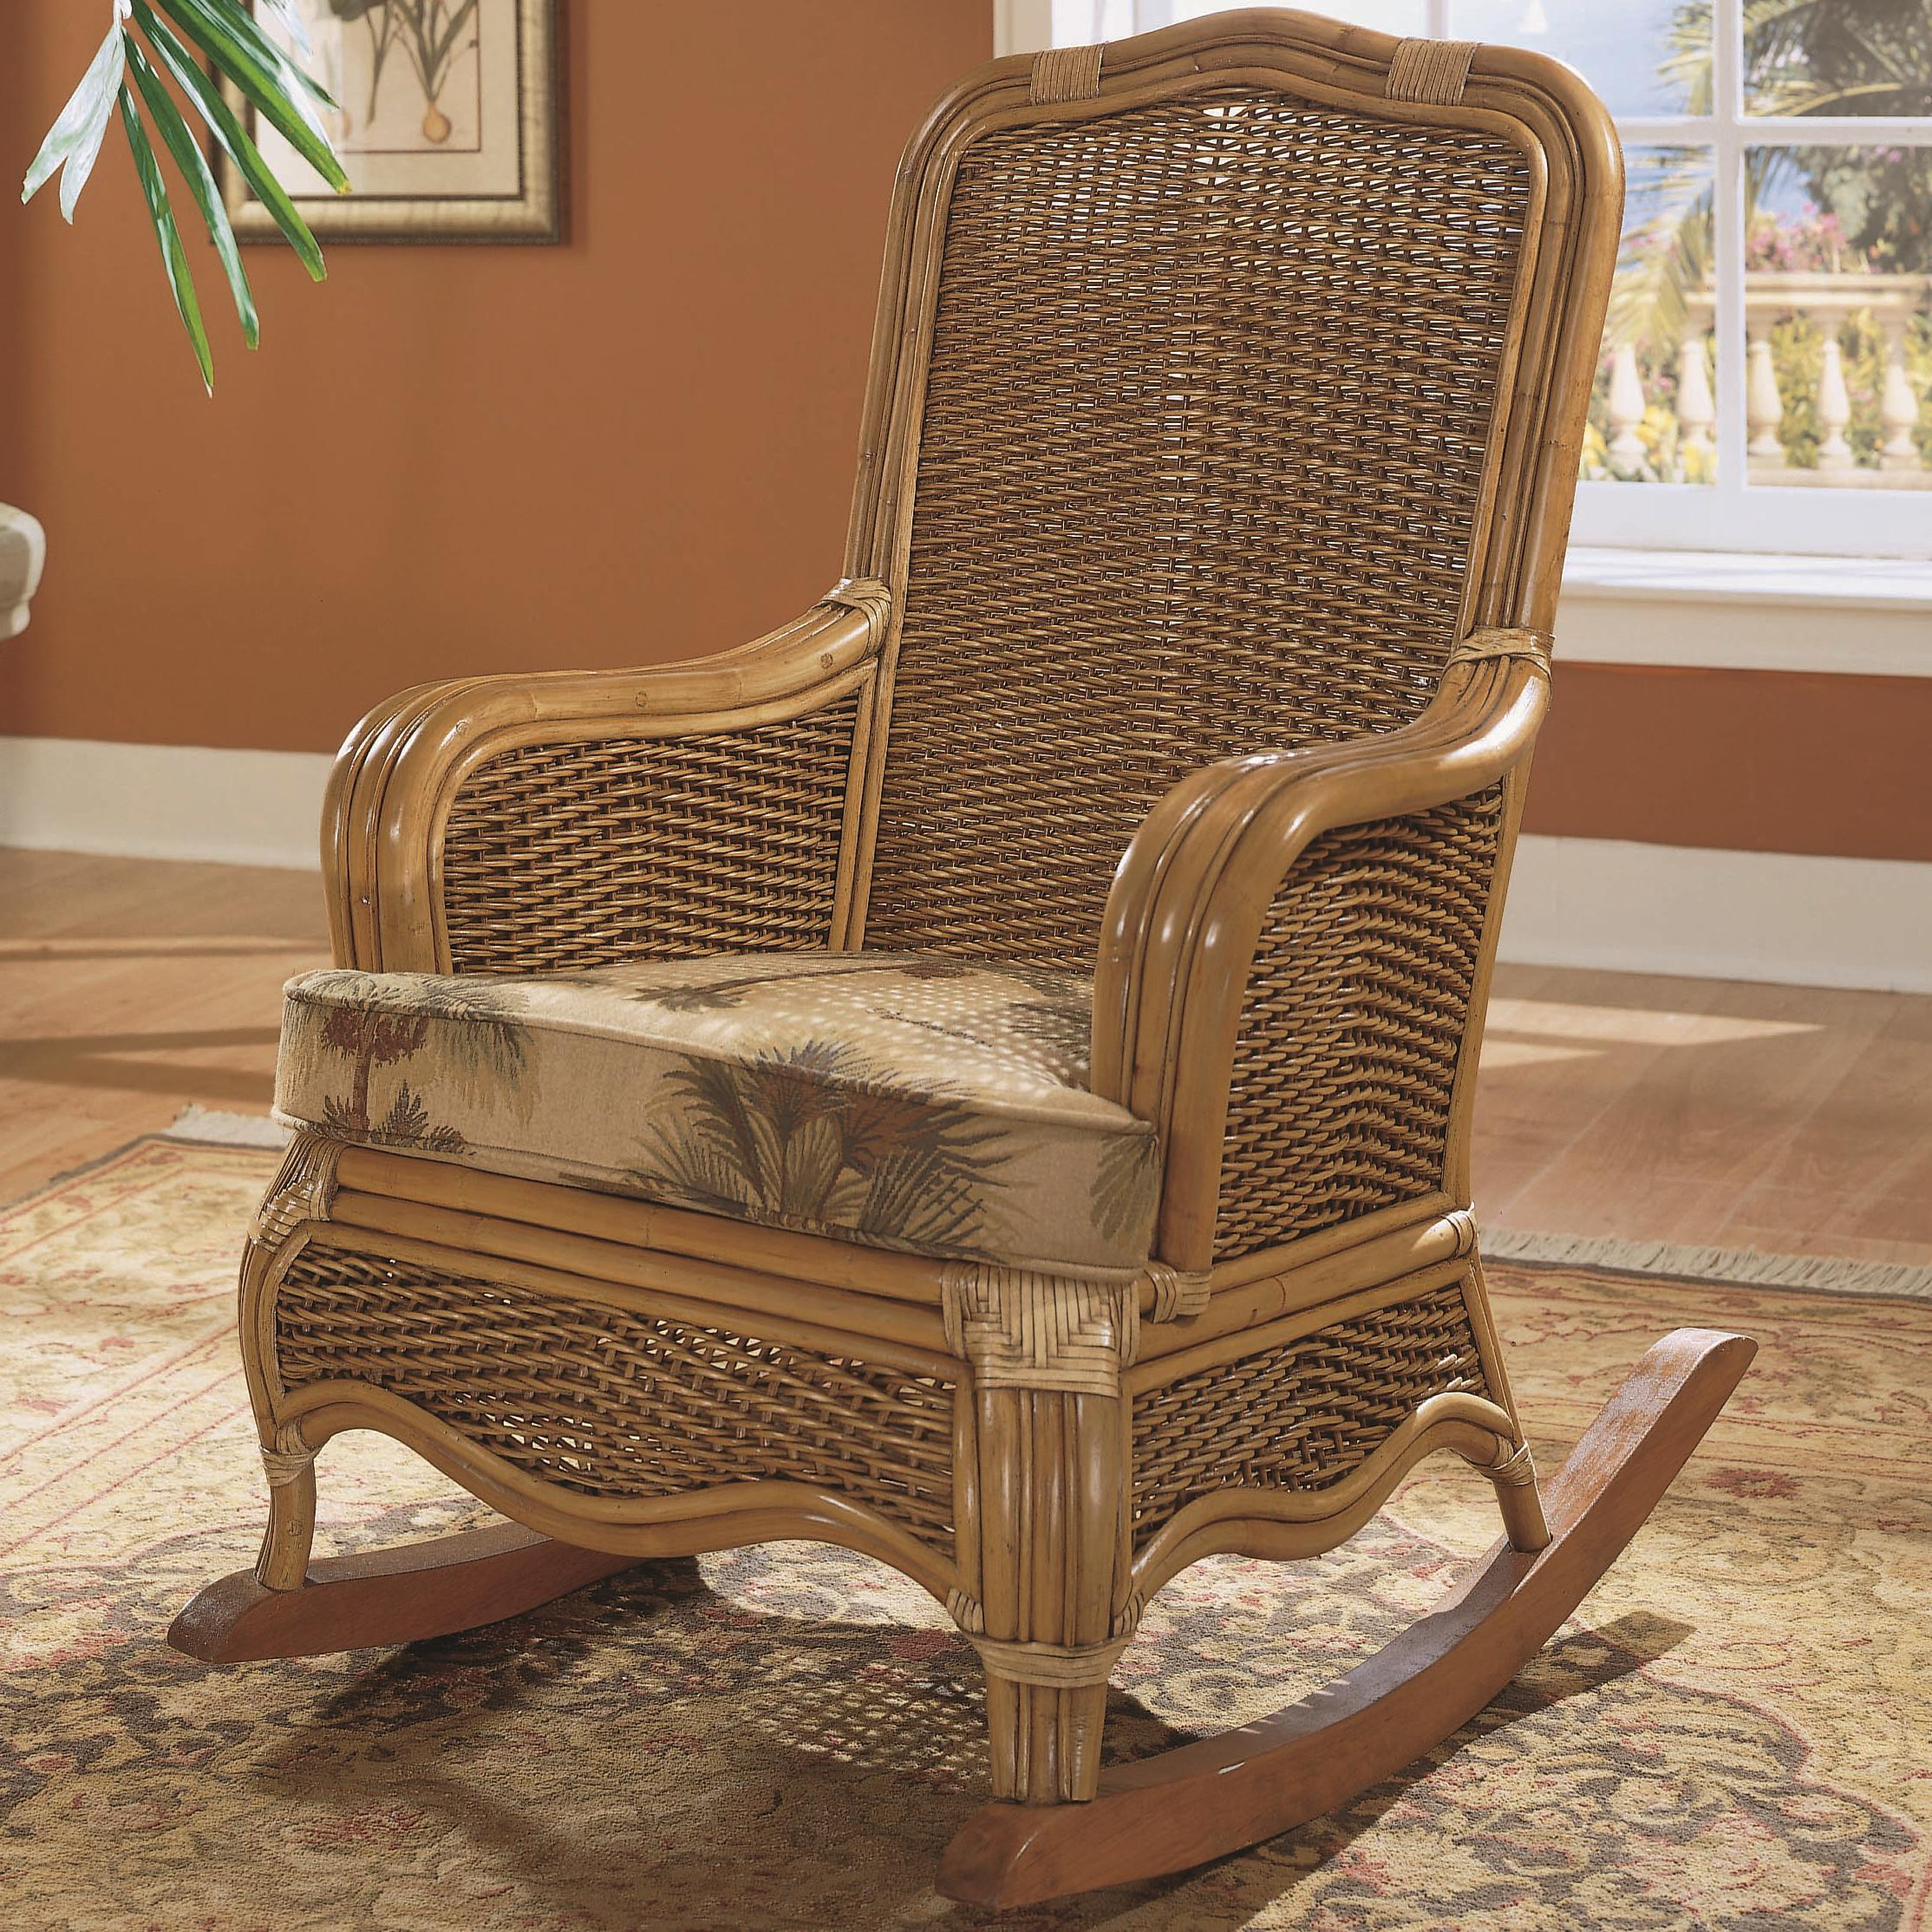 troutman rocking chairs 48 round table 6 charlotte nc lil chair furniture